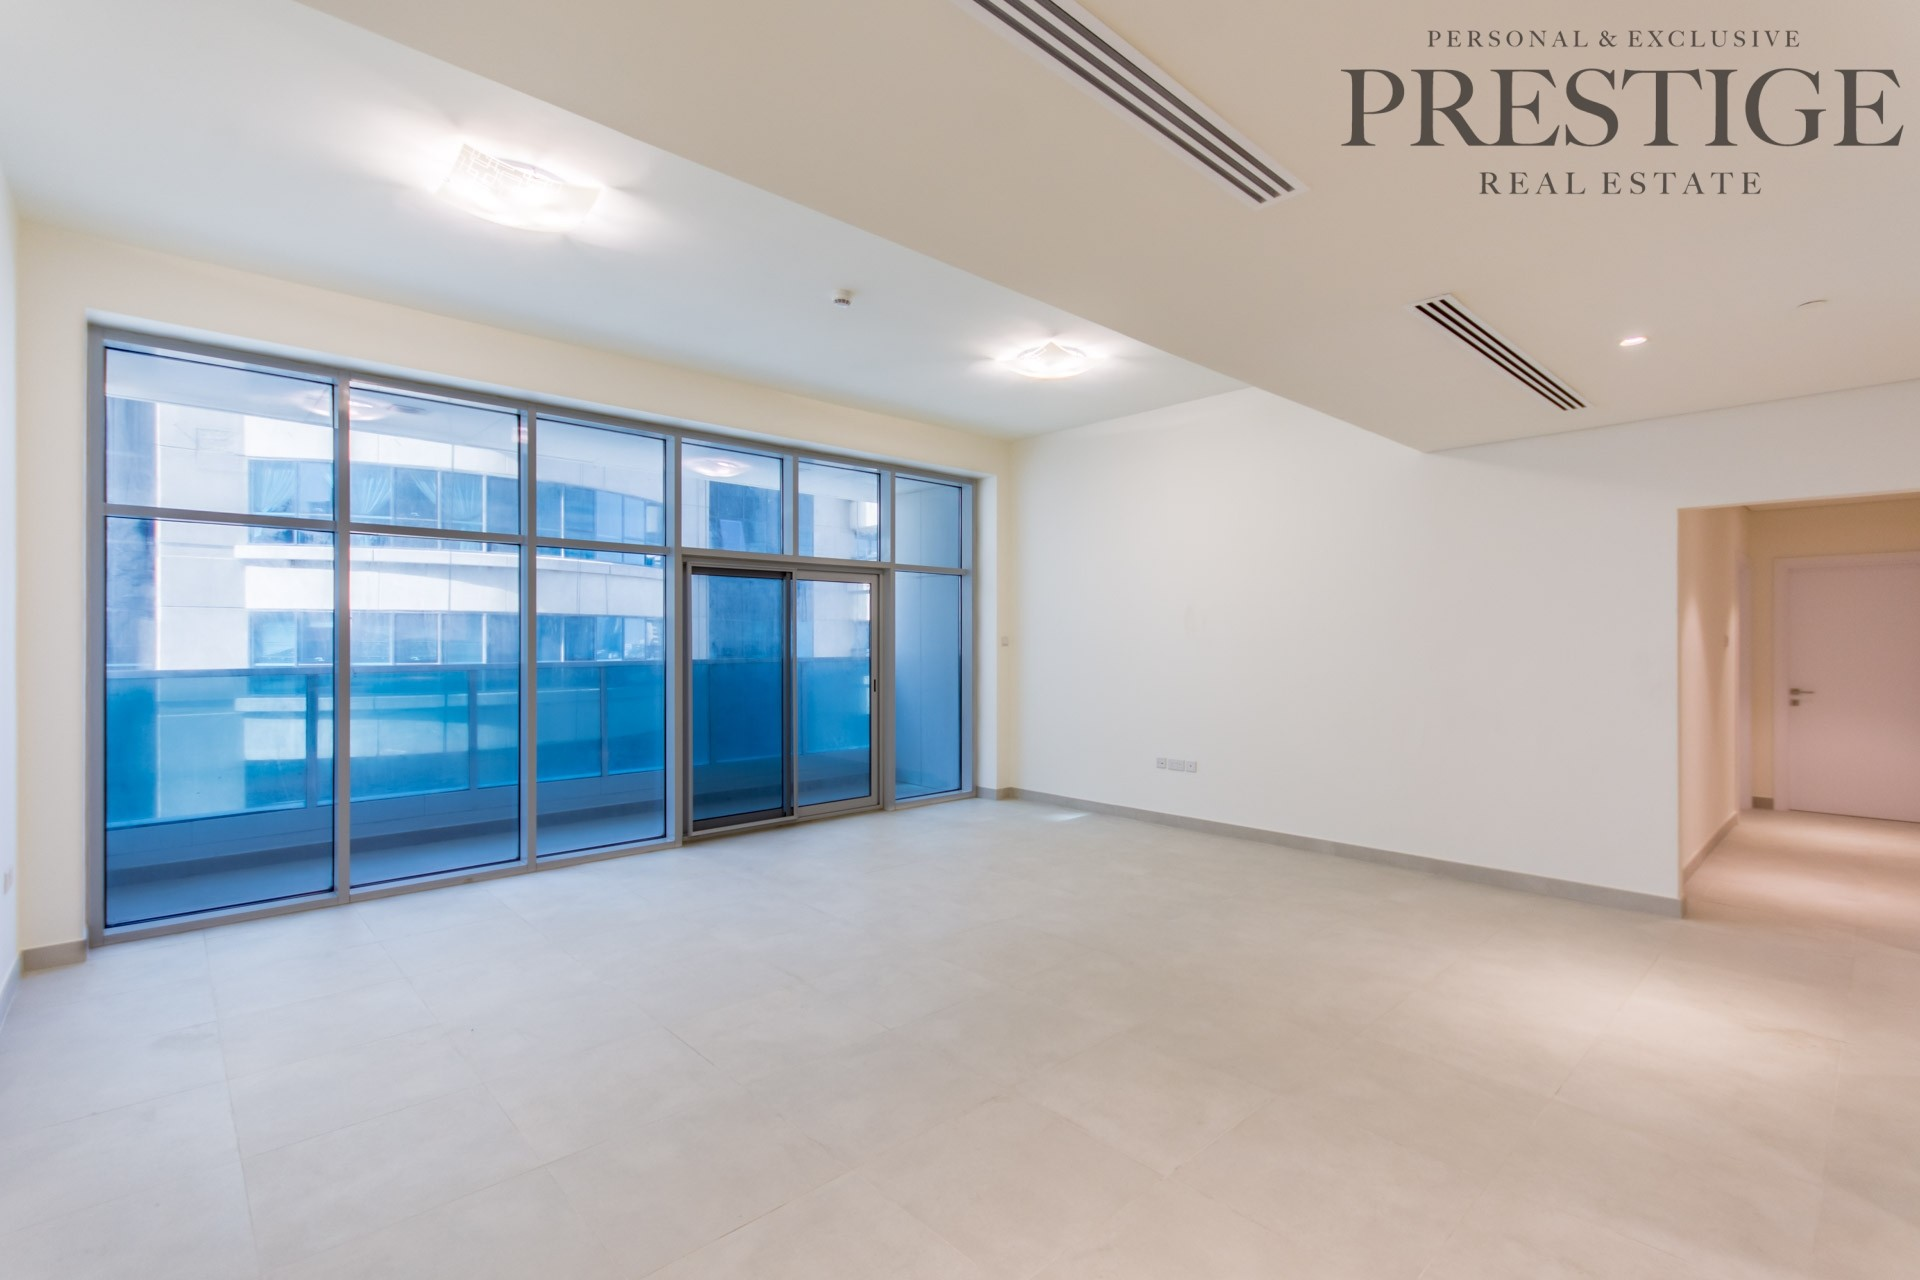 Brand New|Vacant|High Floor|Easy Viewing